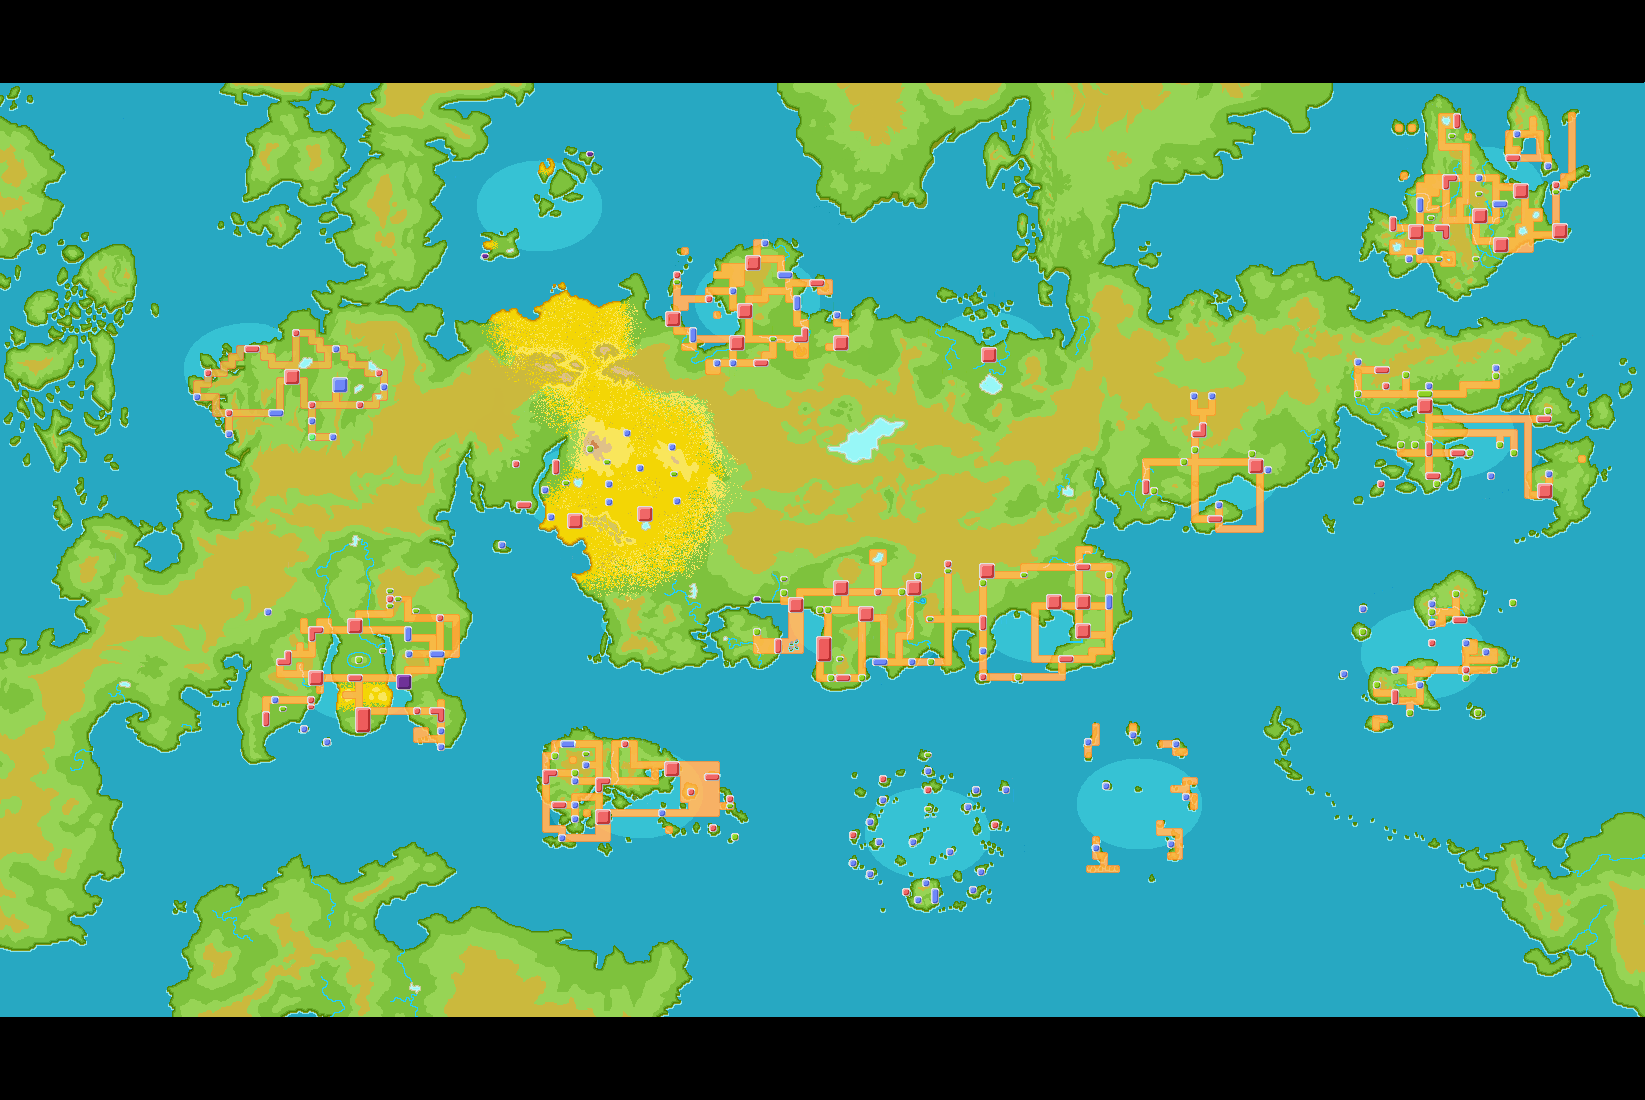 Pokemon World Map | Pokemon, Map, Animation